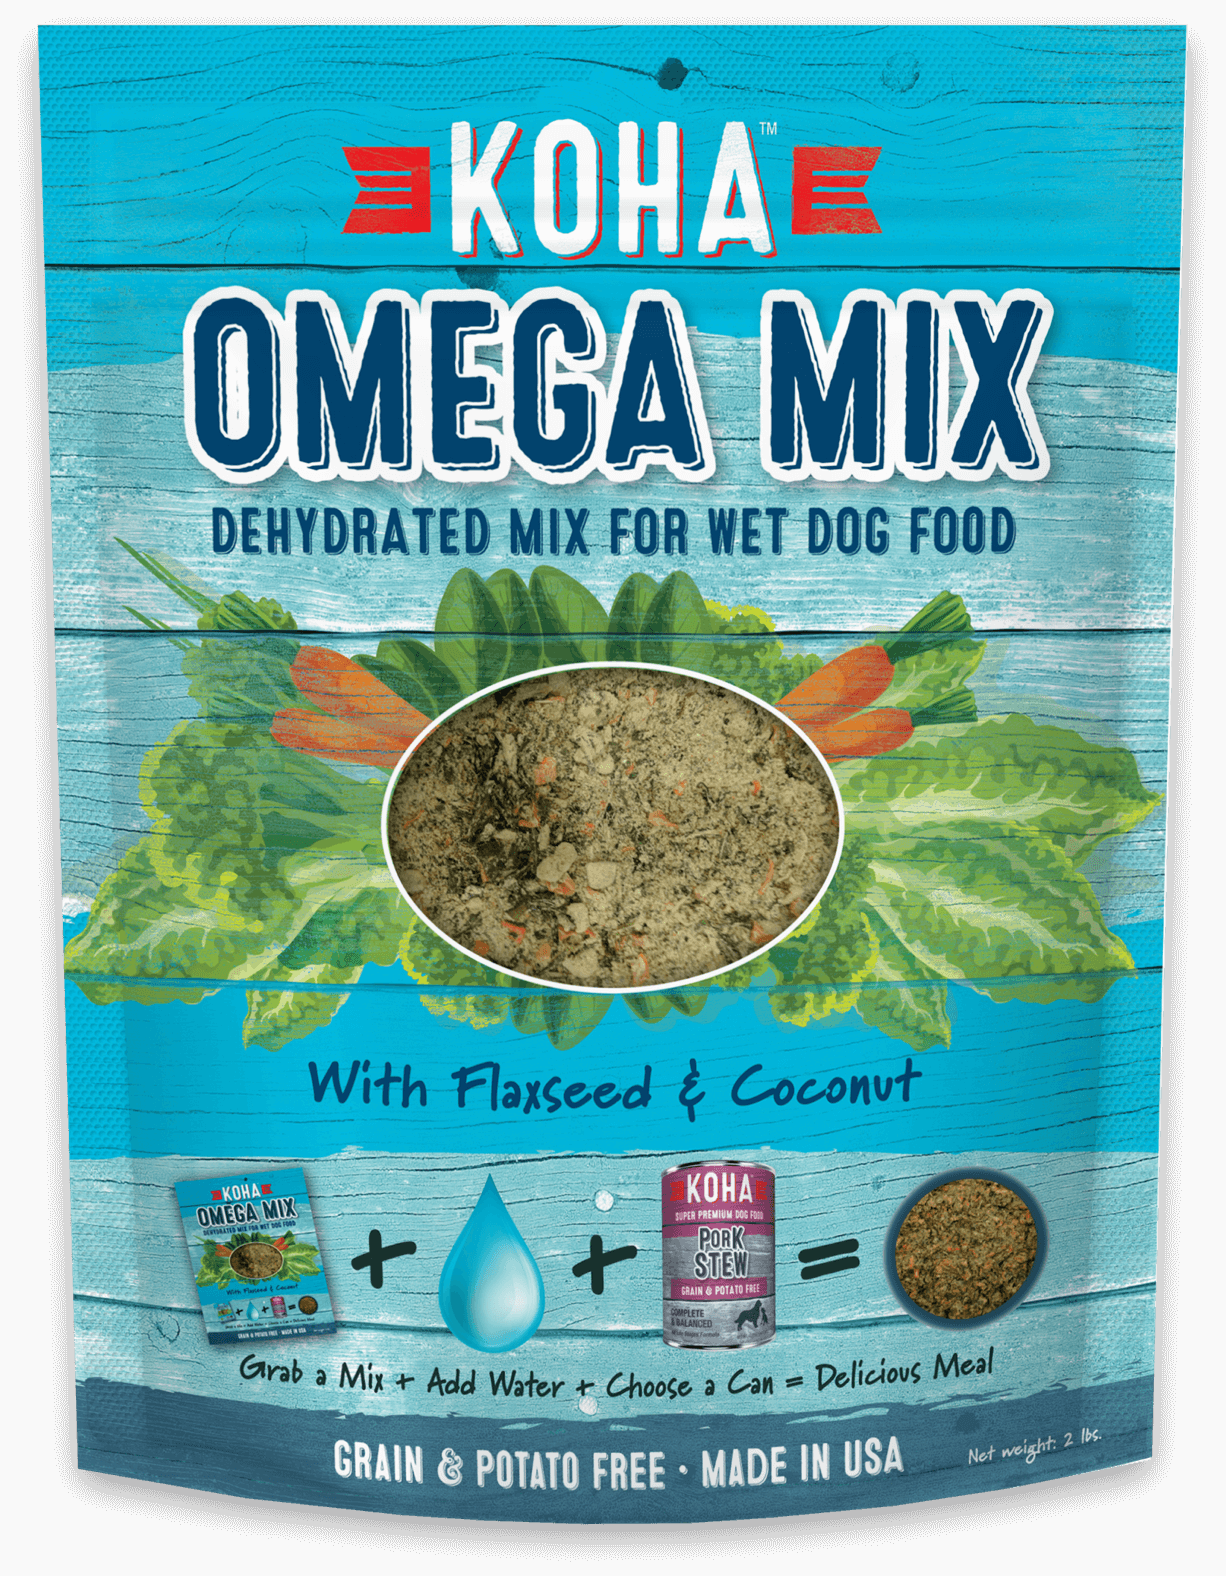 Omega Mix - Dehydrated Mix for Wet & Raw Dog Food - 2 lb. Bag